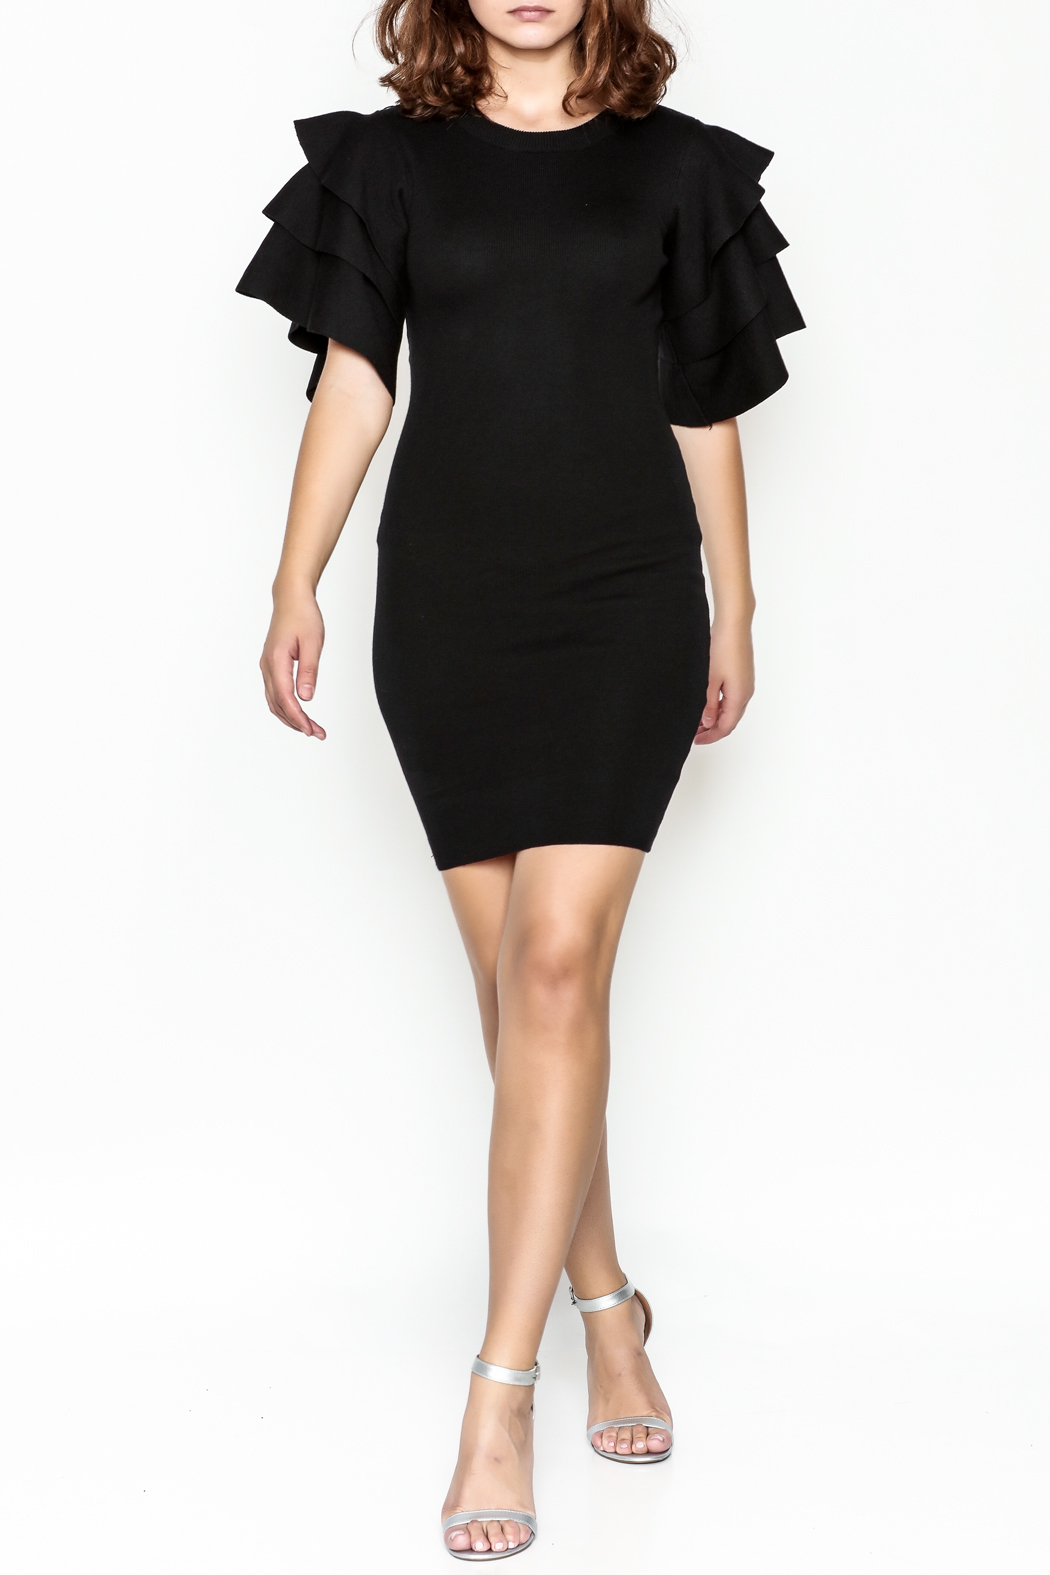 settle down Ruffle Sleeve Dress - Side Cropped Image